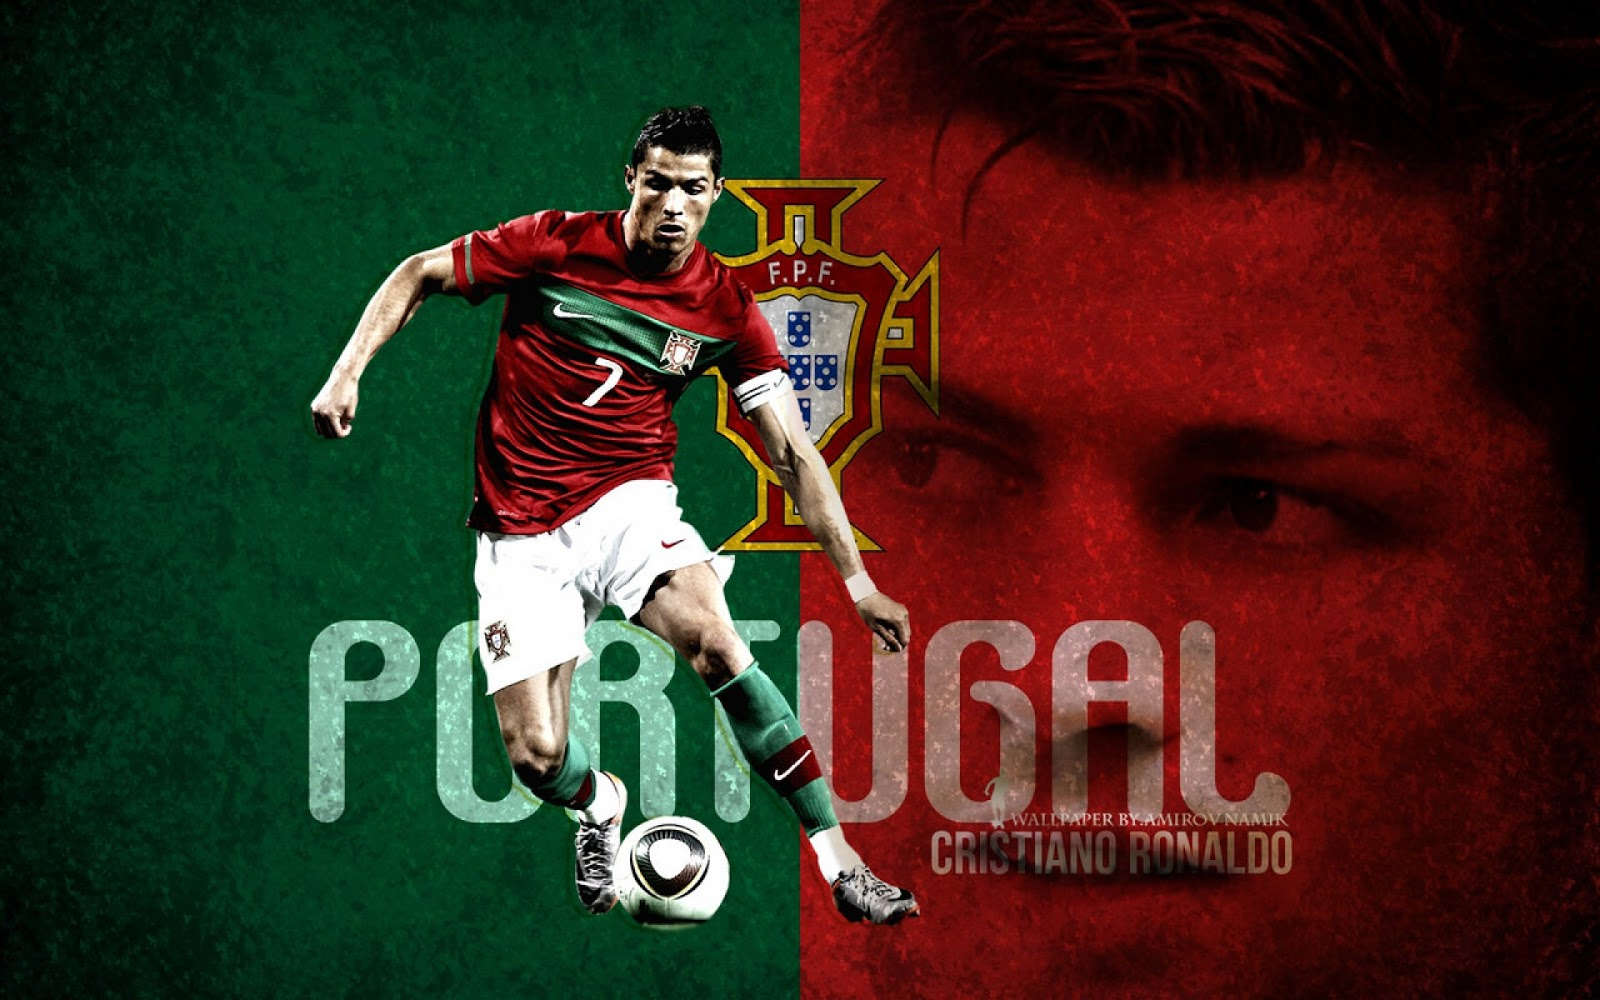 تحميل صور كرستيانو رونالدو http://www.ll-2.com/2013/03/Best-images-Cristiano-Ronaldo-2013-with-Real-Madrid-and-Portugal.html